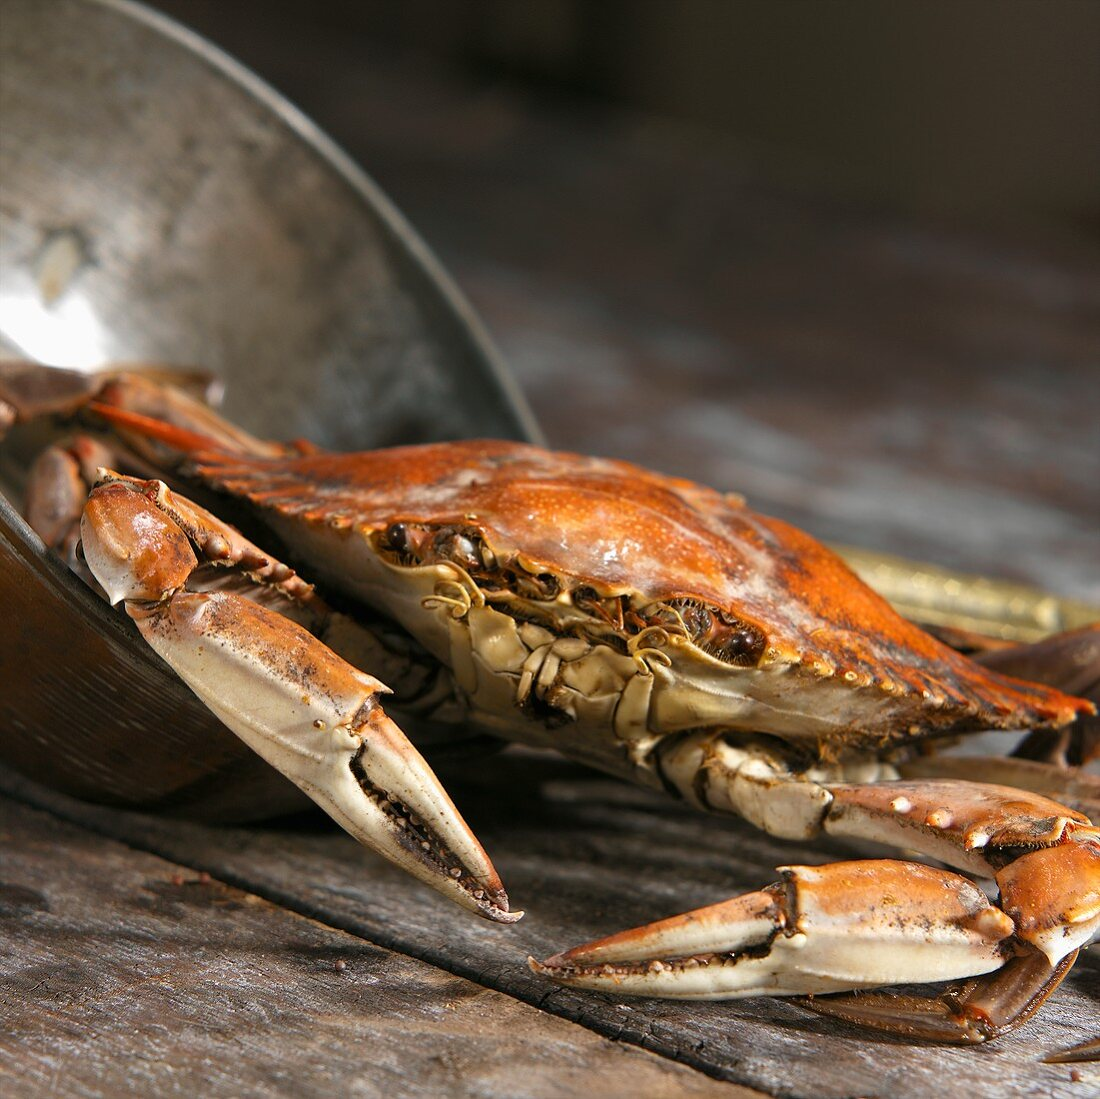 Whole Crab on Rustic Wooden Table